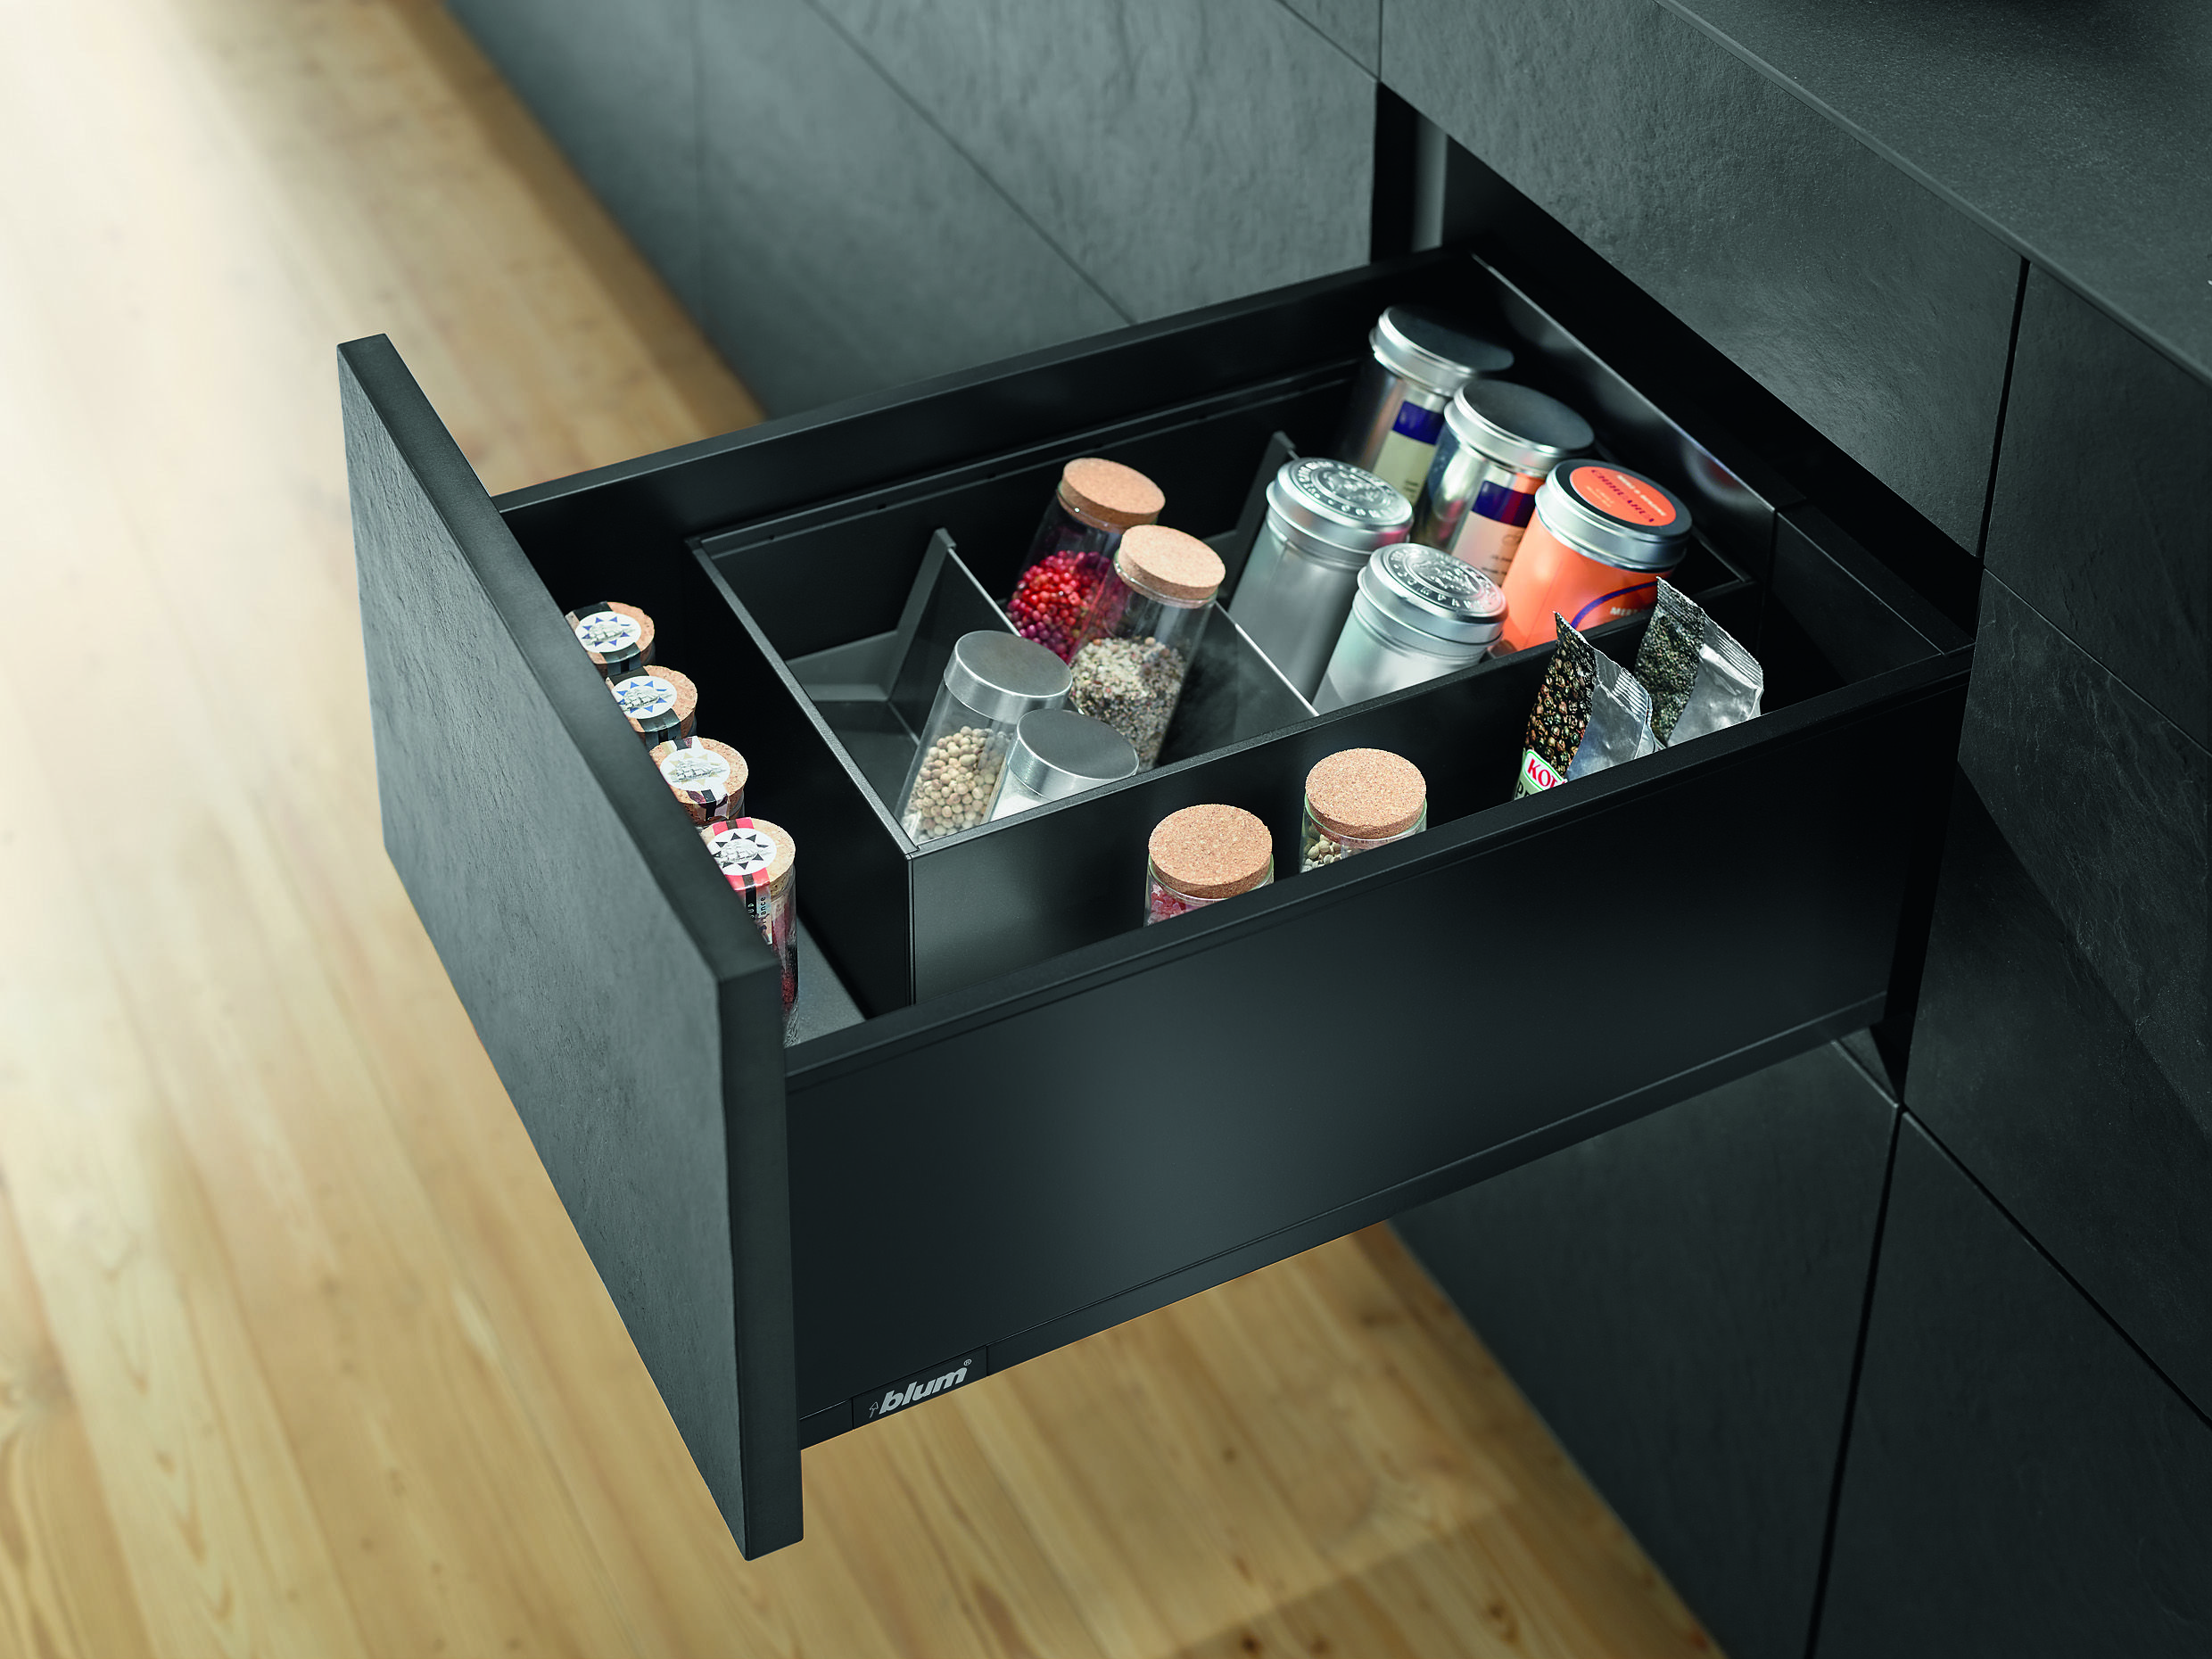 integrated spice rack from blum kitchen k繝箴chen 窶 dining